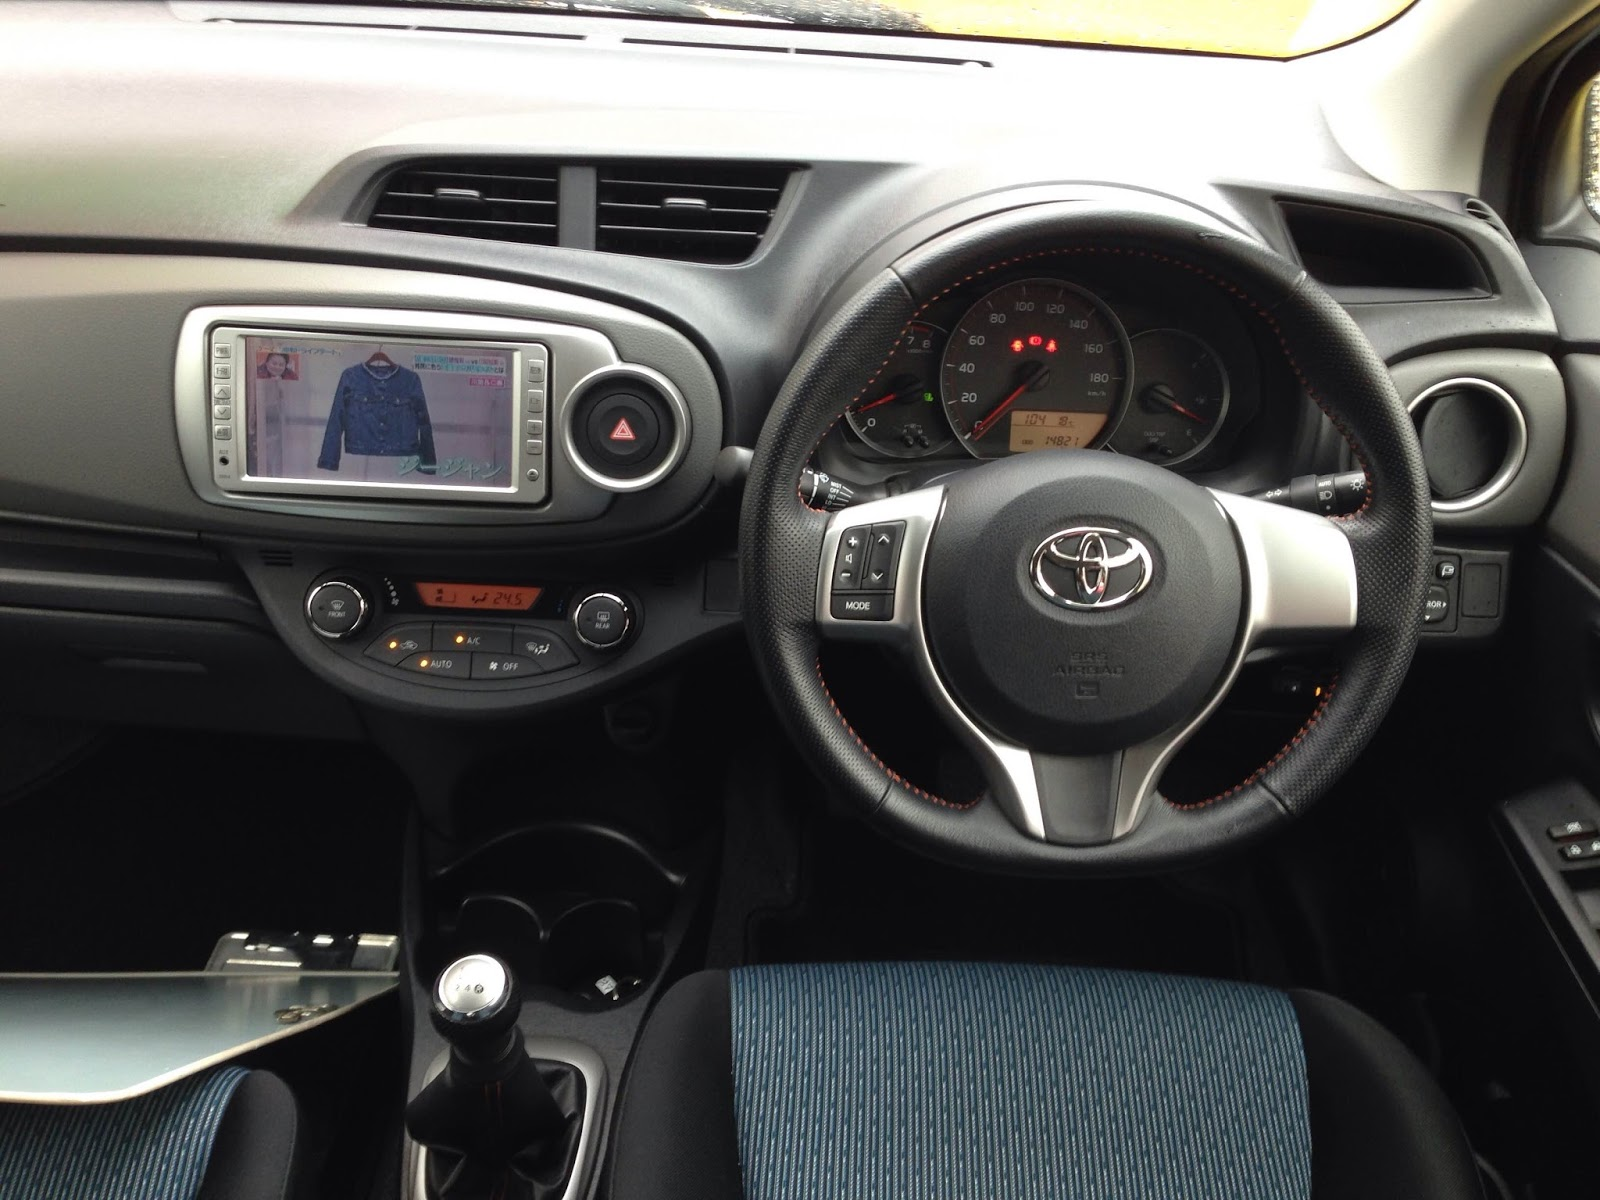 2011 Toyota Vitz Manual transmission - buy used car Japan - Call Mick Lay  Motors on Japan 03-3468-0804 or 090-3805-7141 or 090-9370-0587  www.MickLay.com